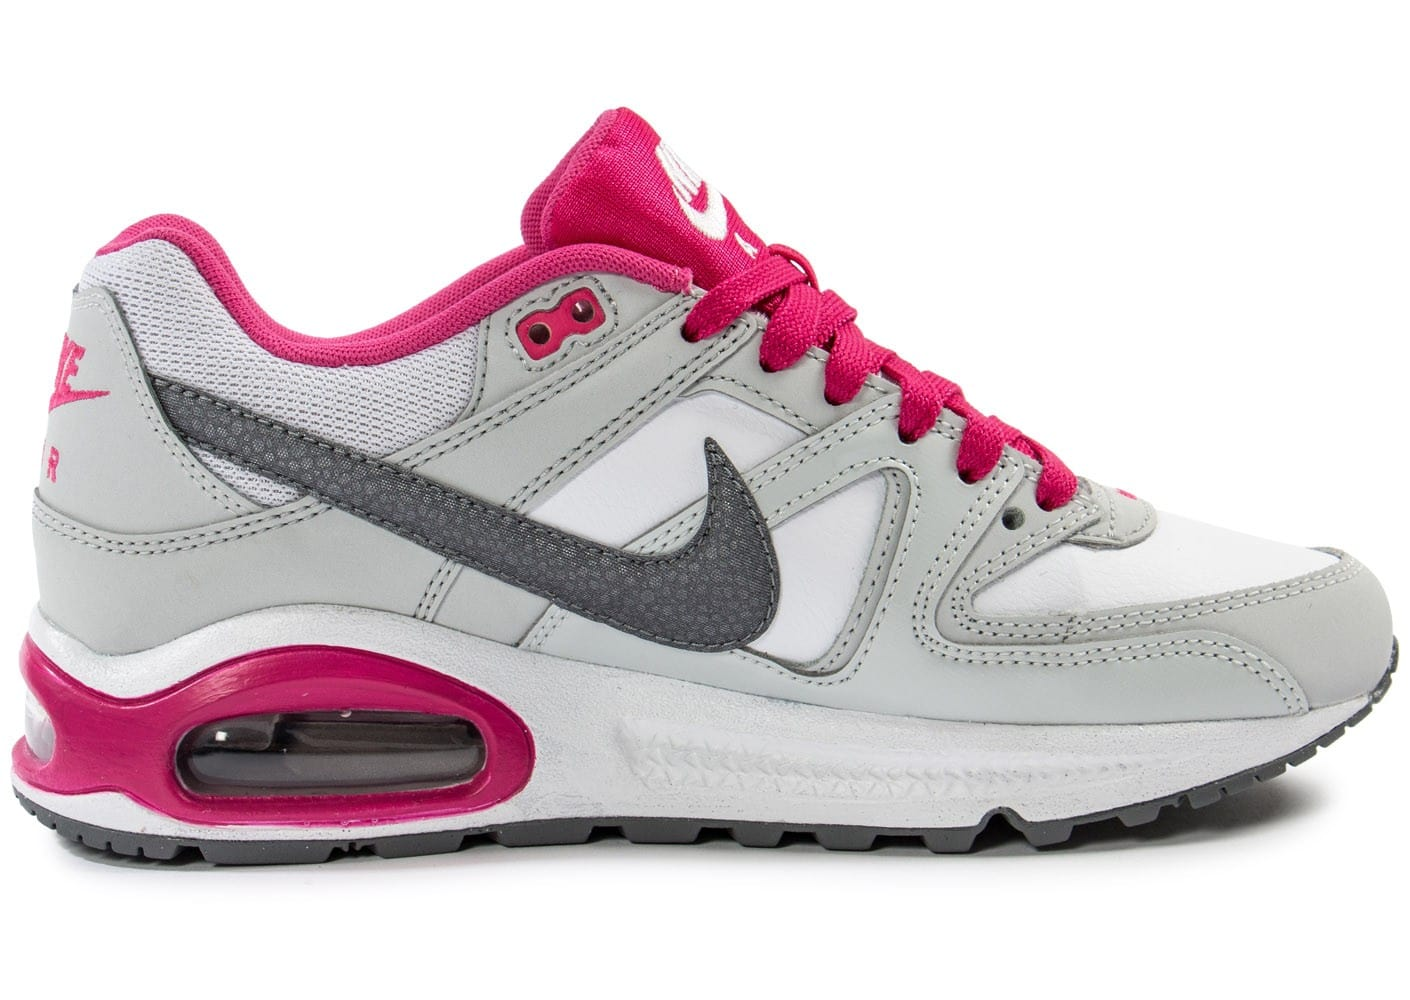 nike air max command junior grise et rose chaussures chaussures chausport. Black Bedroom Furniture Sets. Home Design Ideas